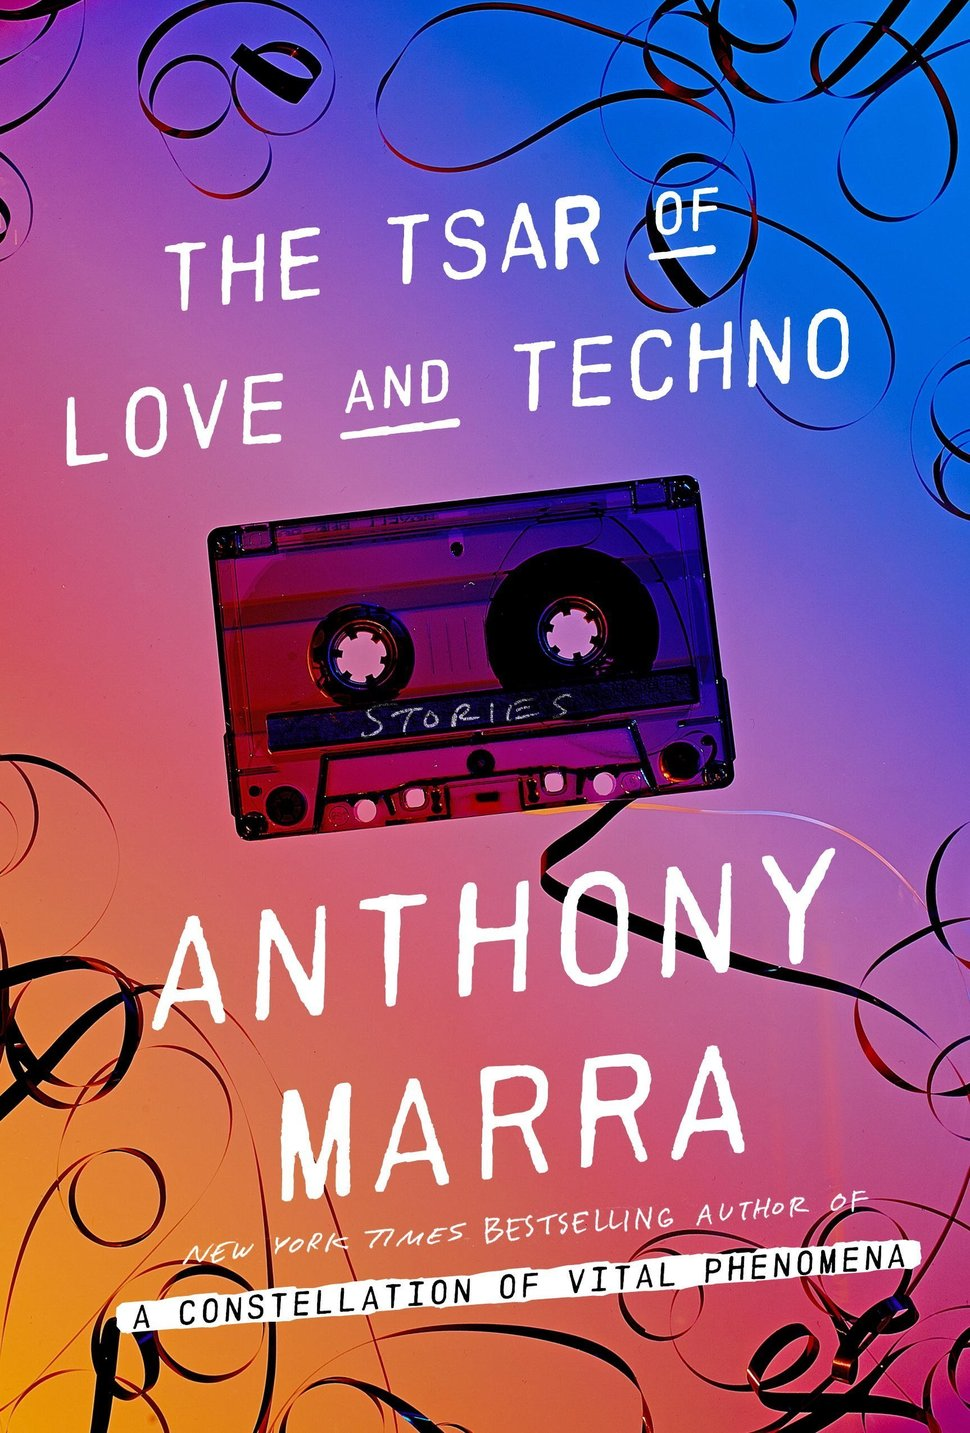 the tsar of love and techno.jpg